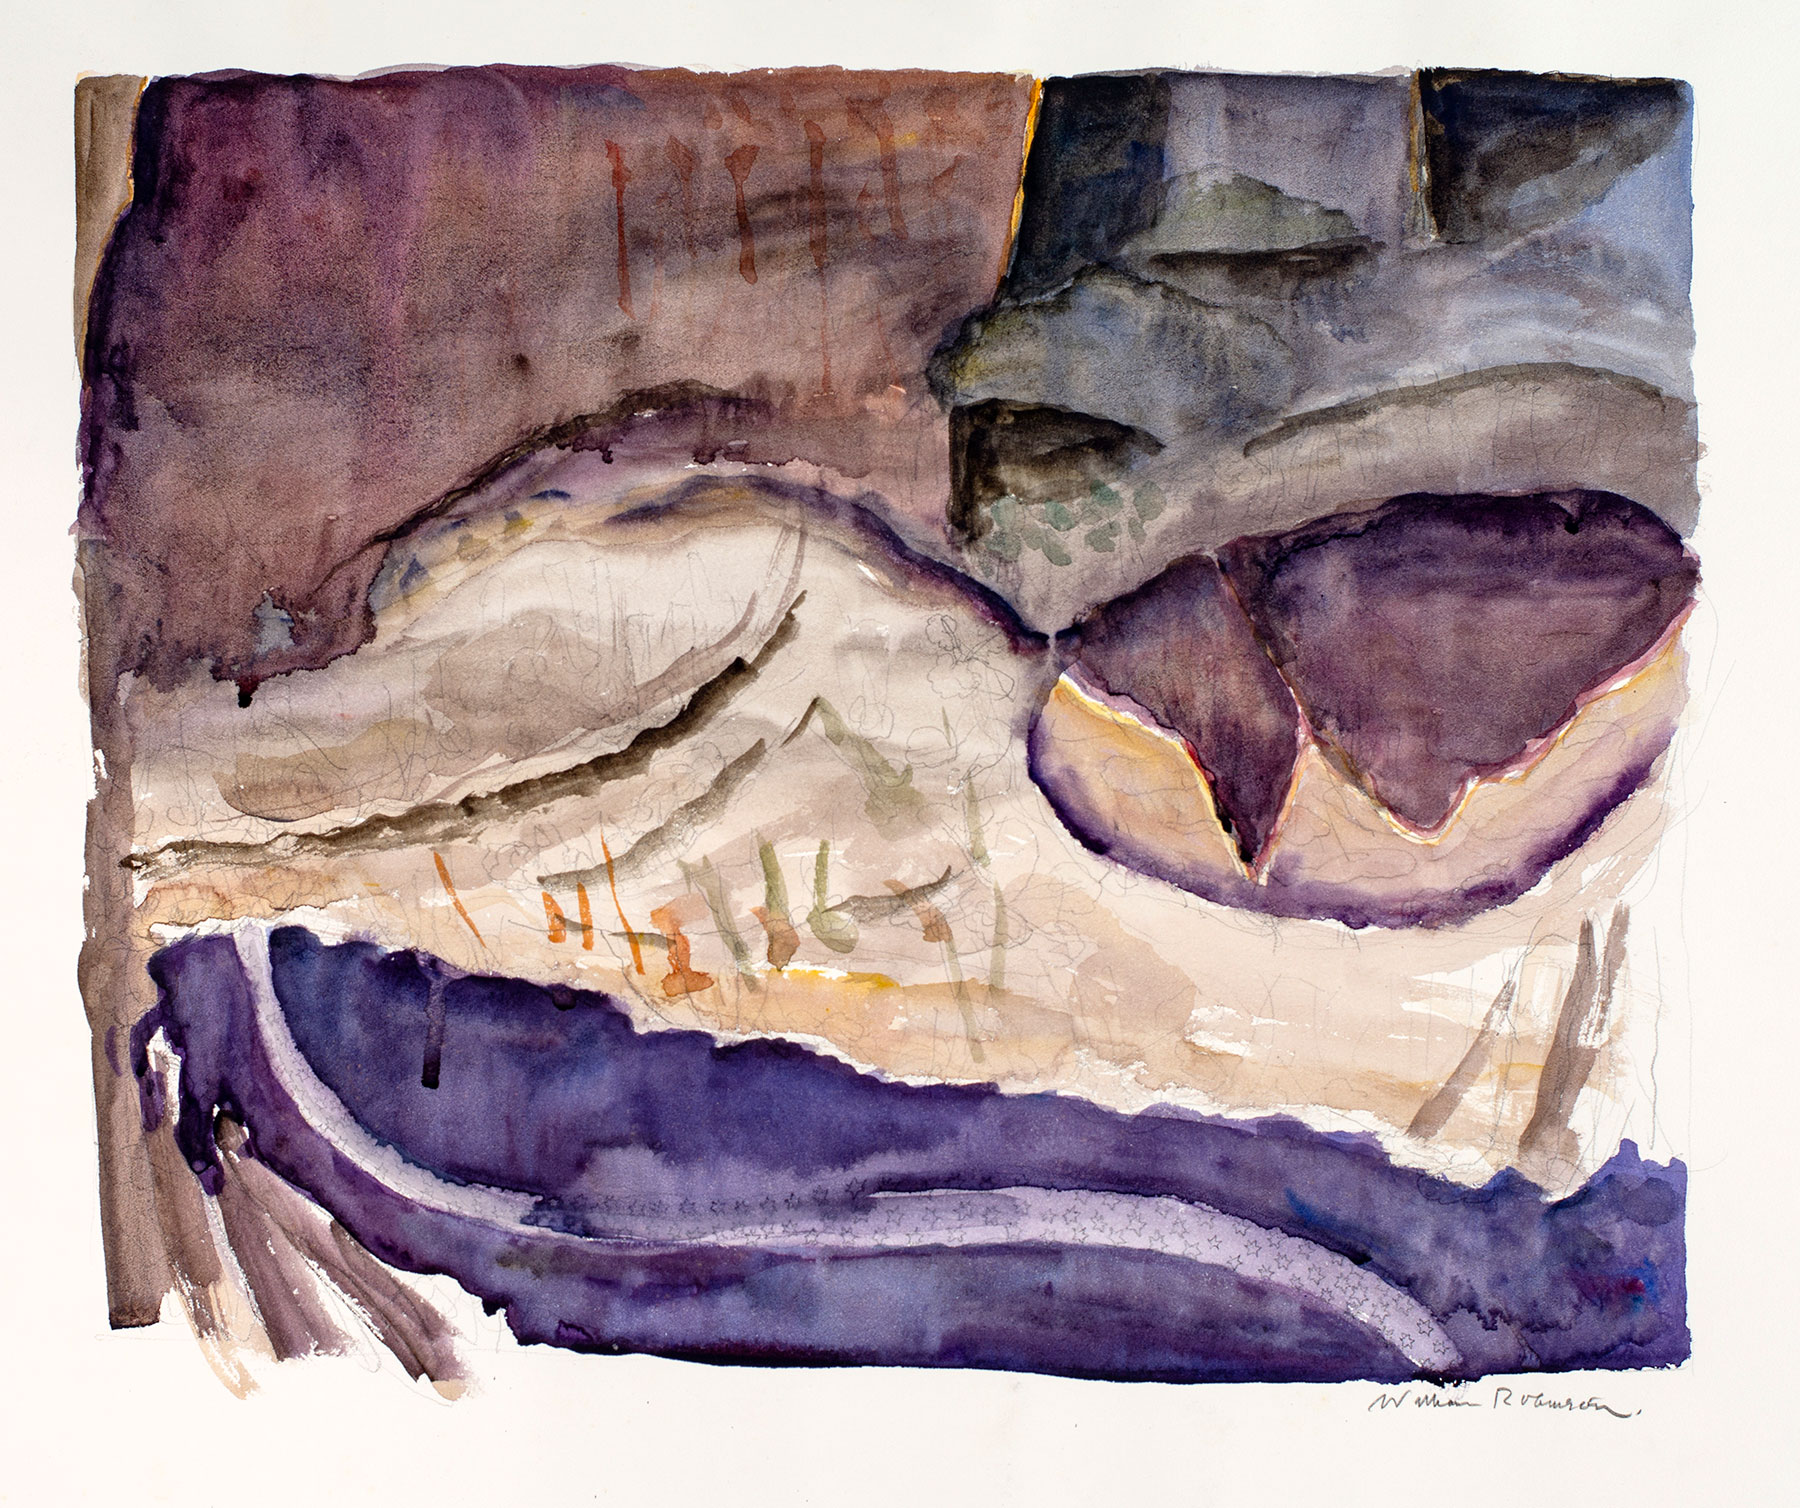 William ROBINSON, 'Landscape 41' 1989, watercolour on paper. QUT Art Collection, Donated through the Australian Government's Cultural Gifts Program by William Robinson, 2018.